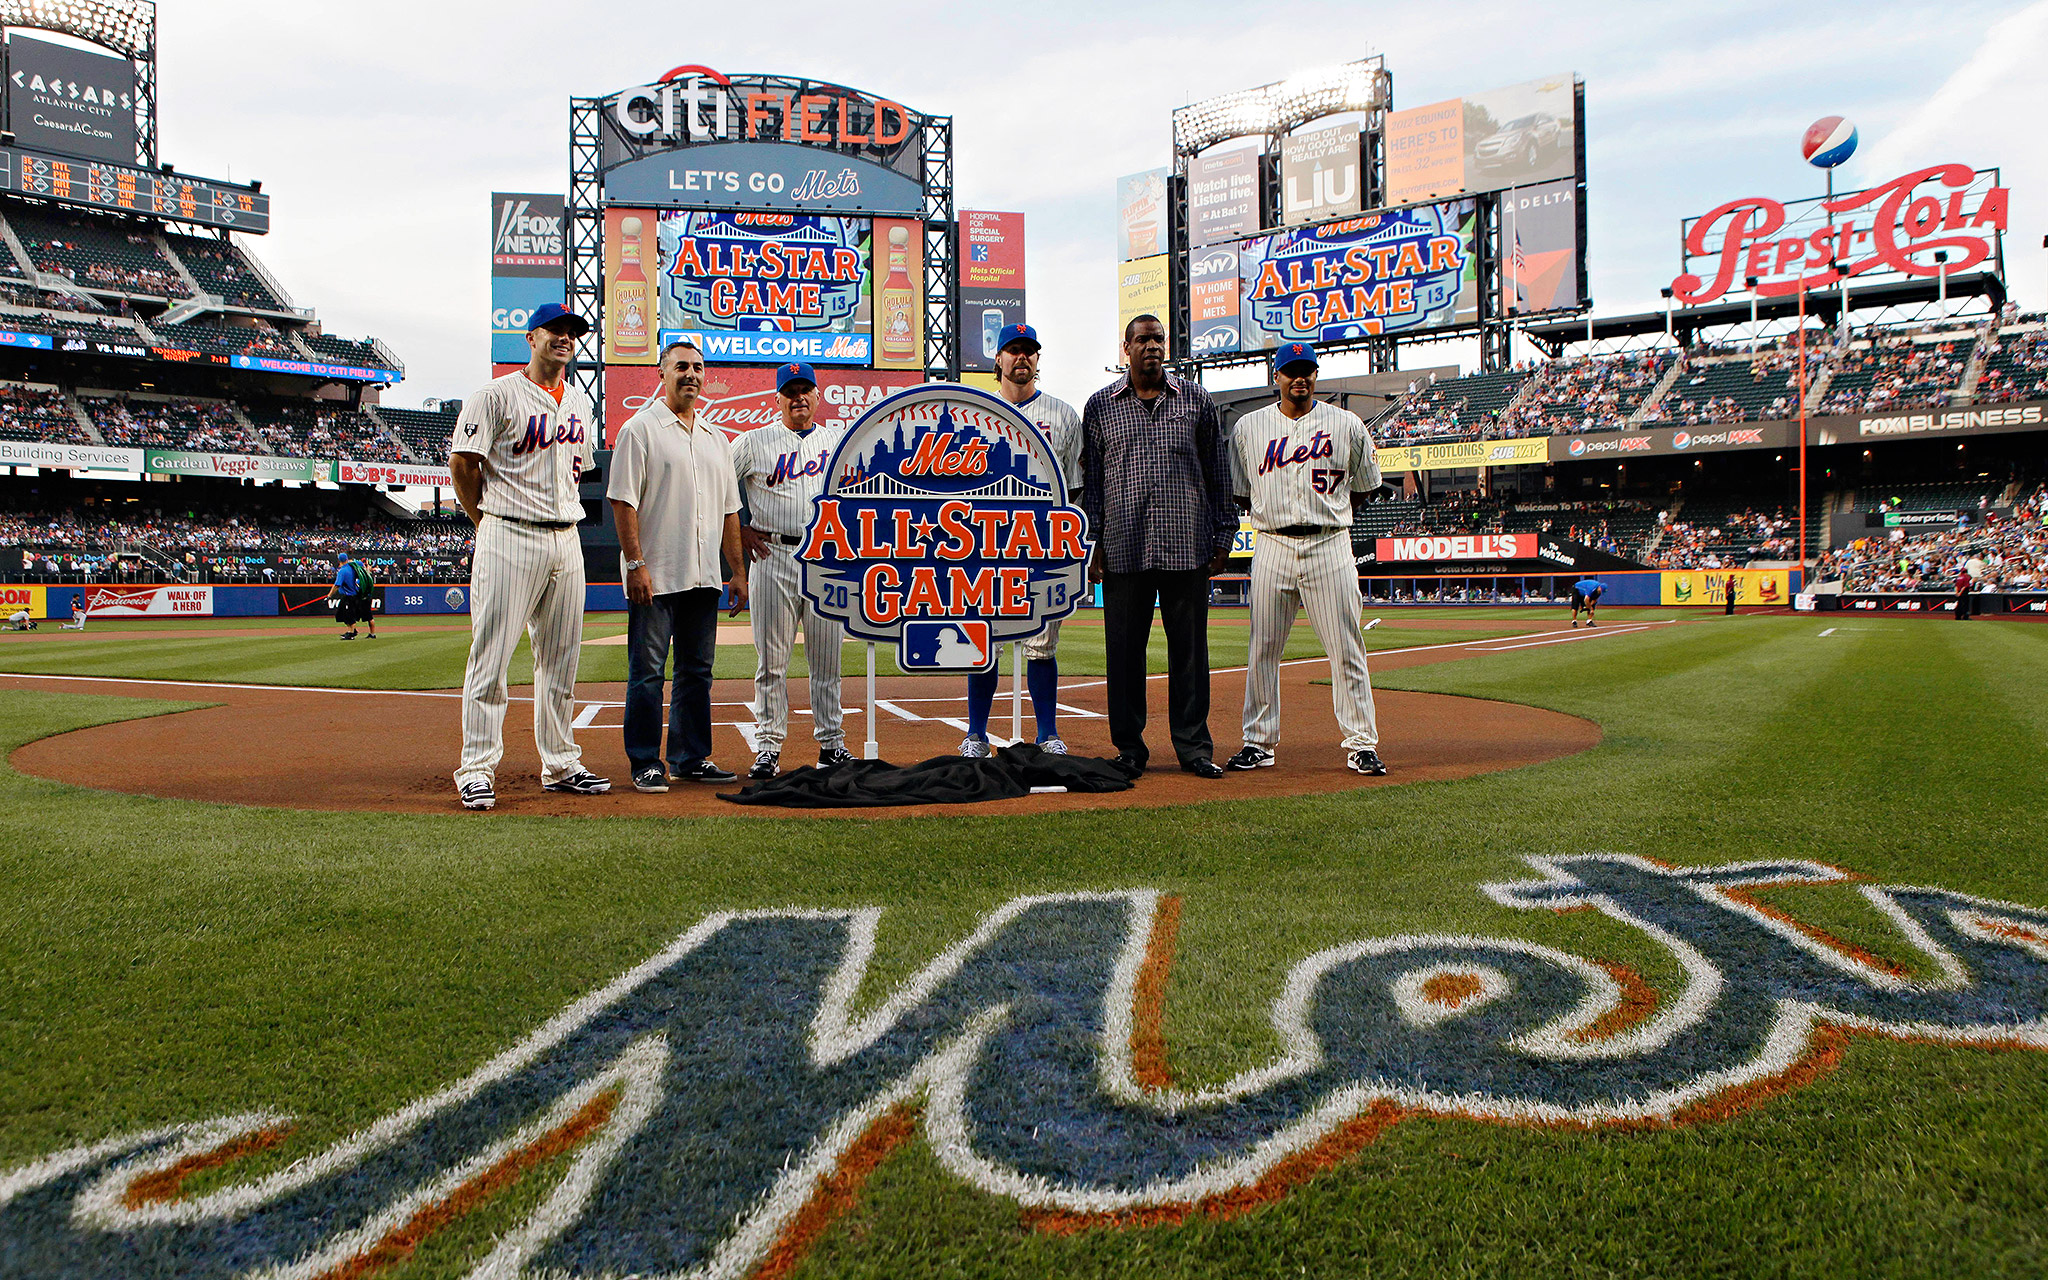 July 16, 2013 -- Citi Field